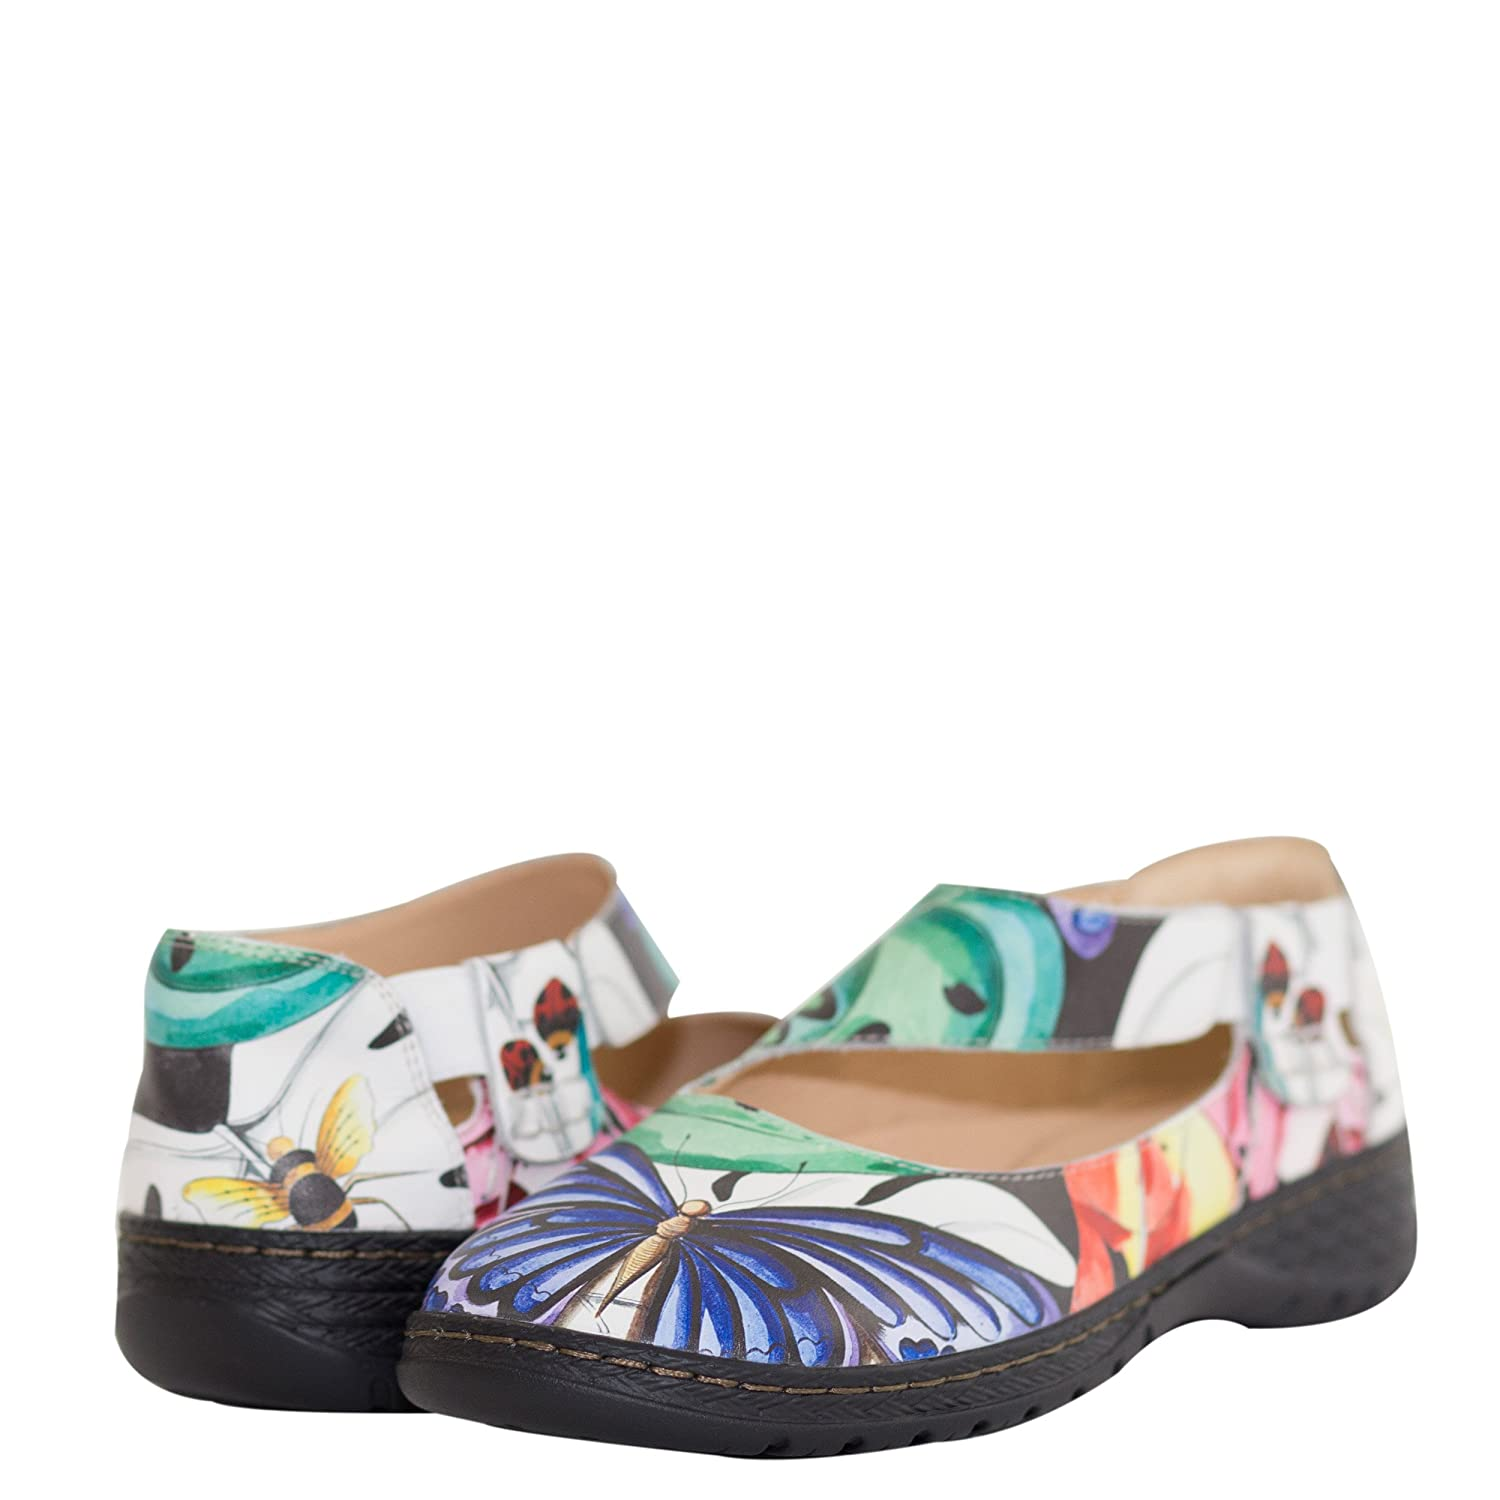 Anuschka Women's Mita Printed Leather Mary Jane,Lovely Leaves B07DB9CX85 US Size 6|Lovely Leaves